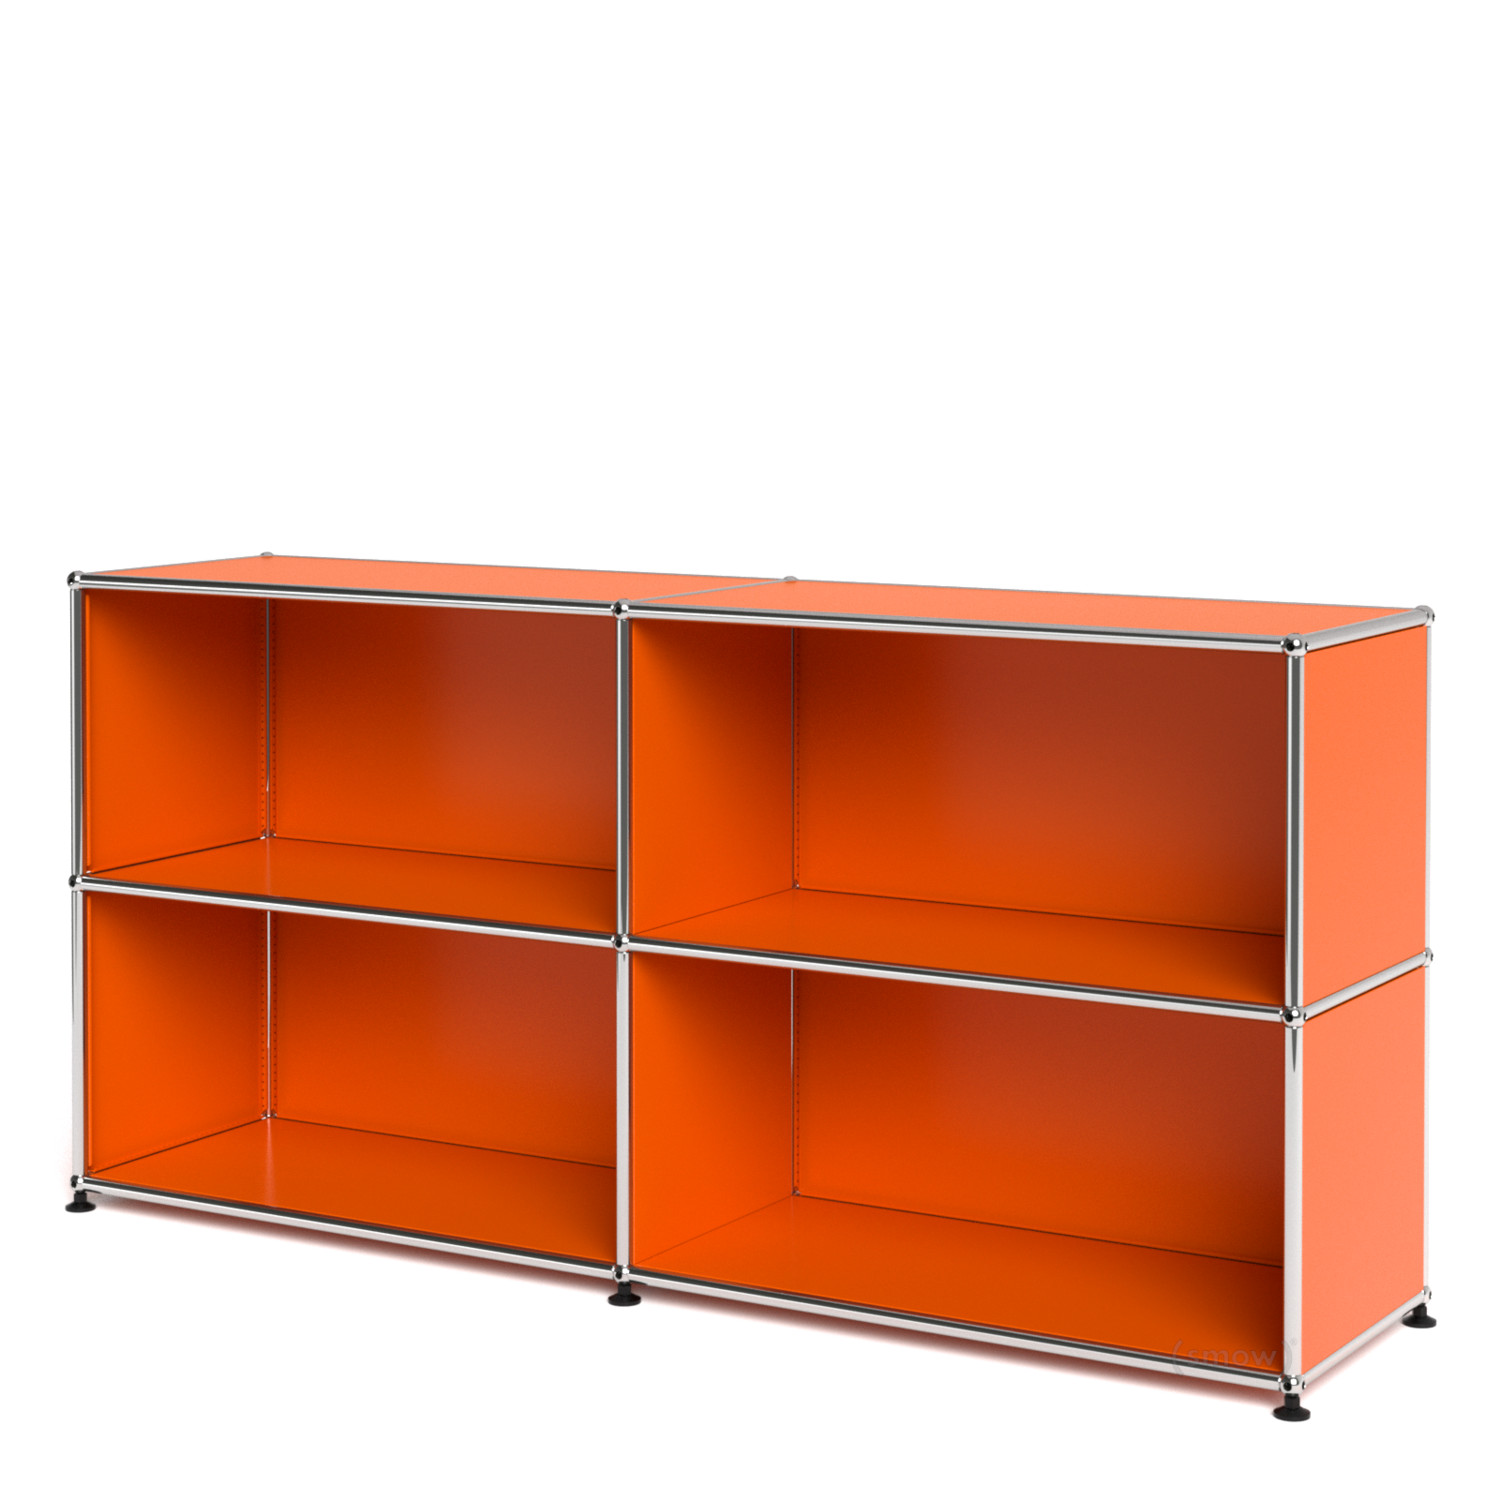 Usm haller sideboard l open pure orange ral 2004 by fritz for Sideboard orange